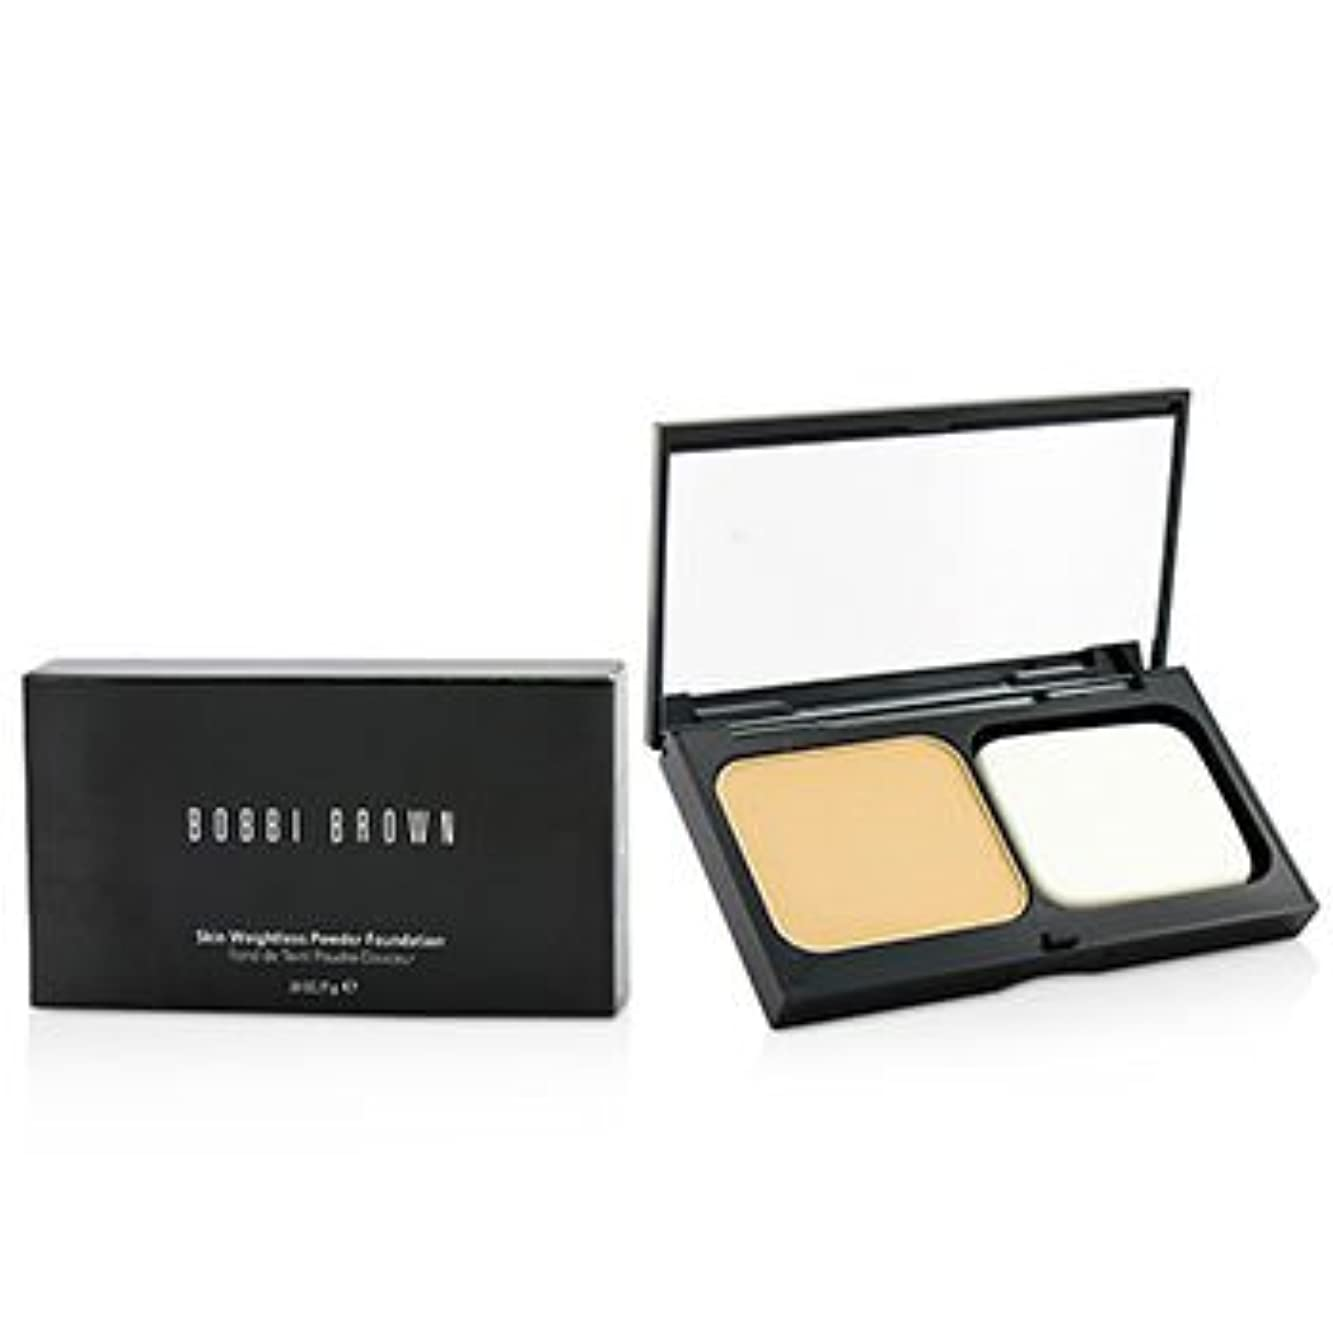 決めますシャトル試み[Bobbi Brown] Skin Weightless Powder Foundation - #04 Natural 11g/0.38oz